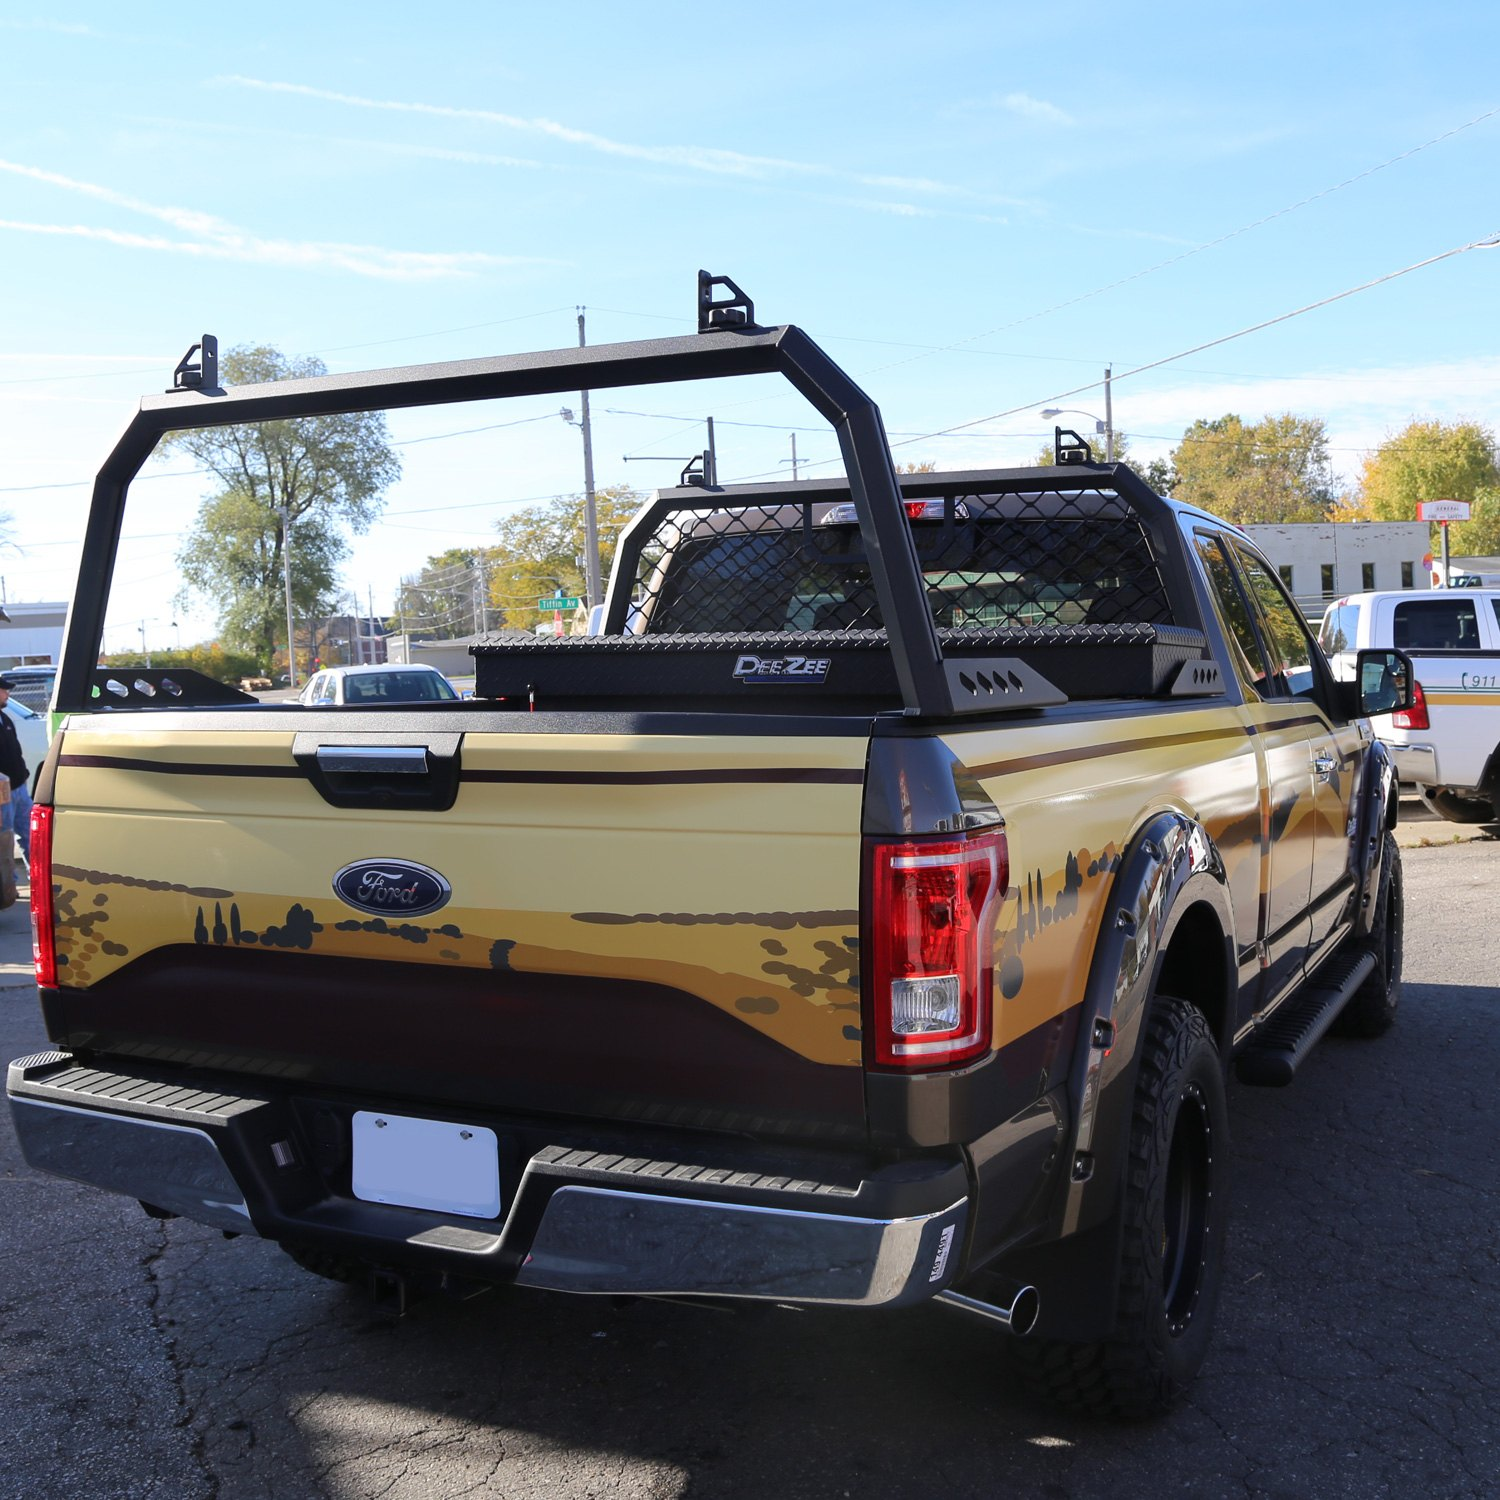 dee zee dodge ram 2500 3500 1994 2008 cab rack. Cars Review. Best American Auto & Cars Review